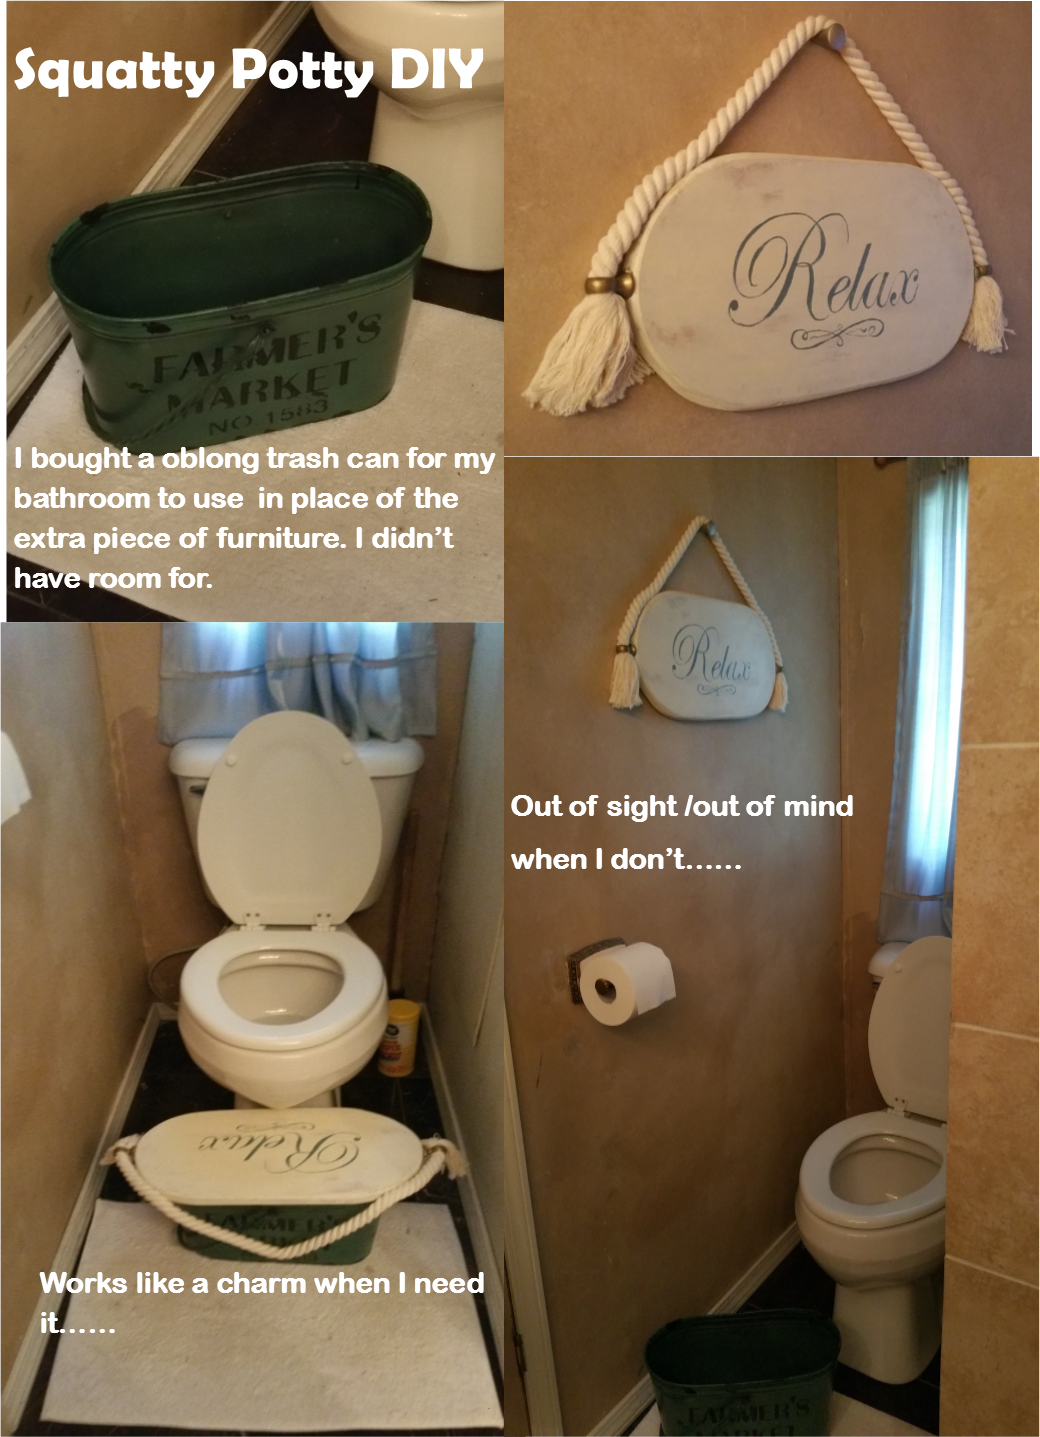 f3ac7e2cf08 DIY Squatty Potty! I didn t have room for another piece of  furniture equipment in my small space. so I came up with this alternative.